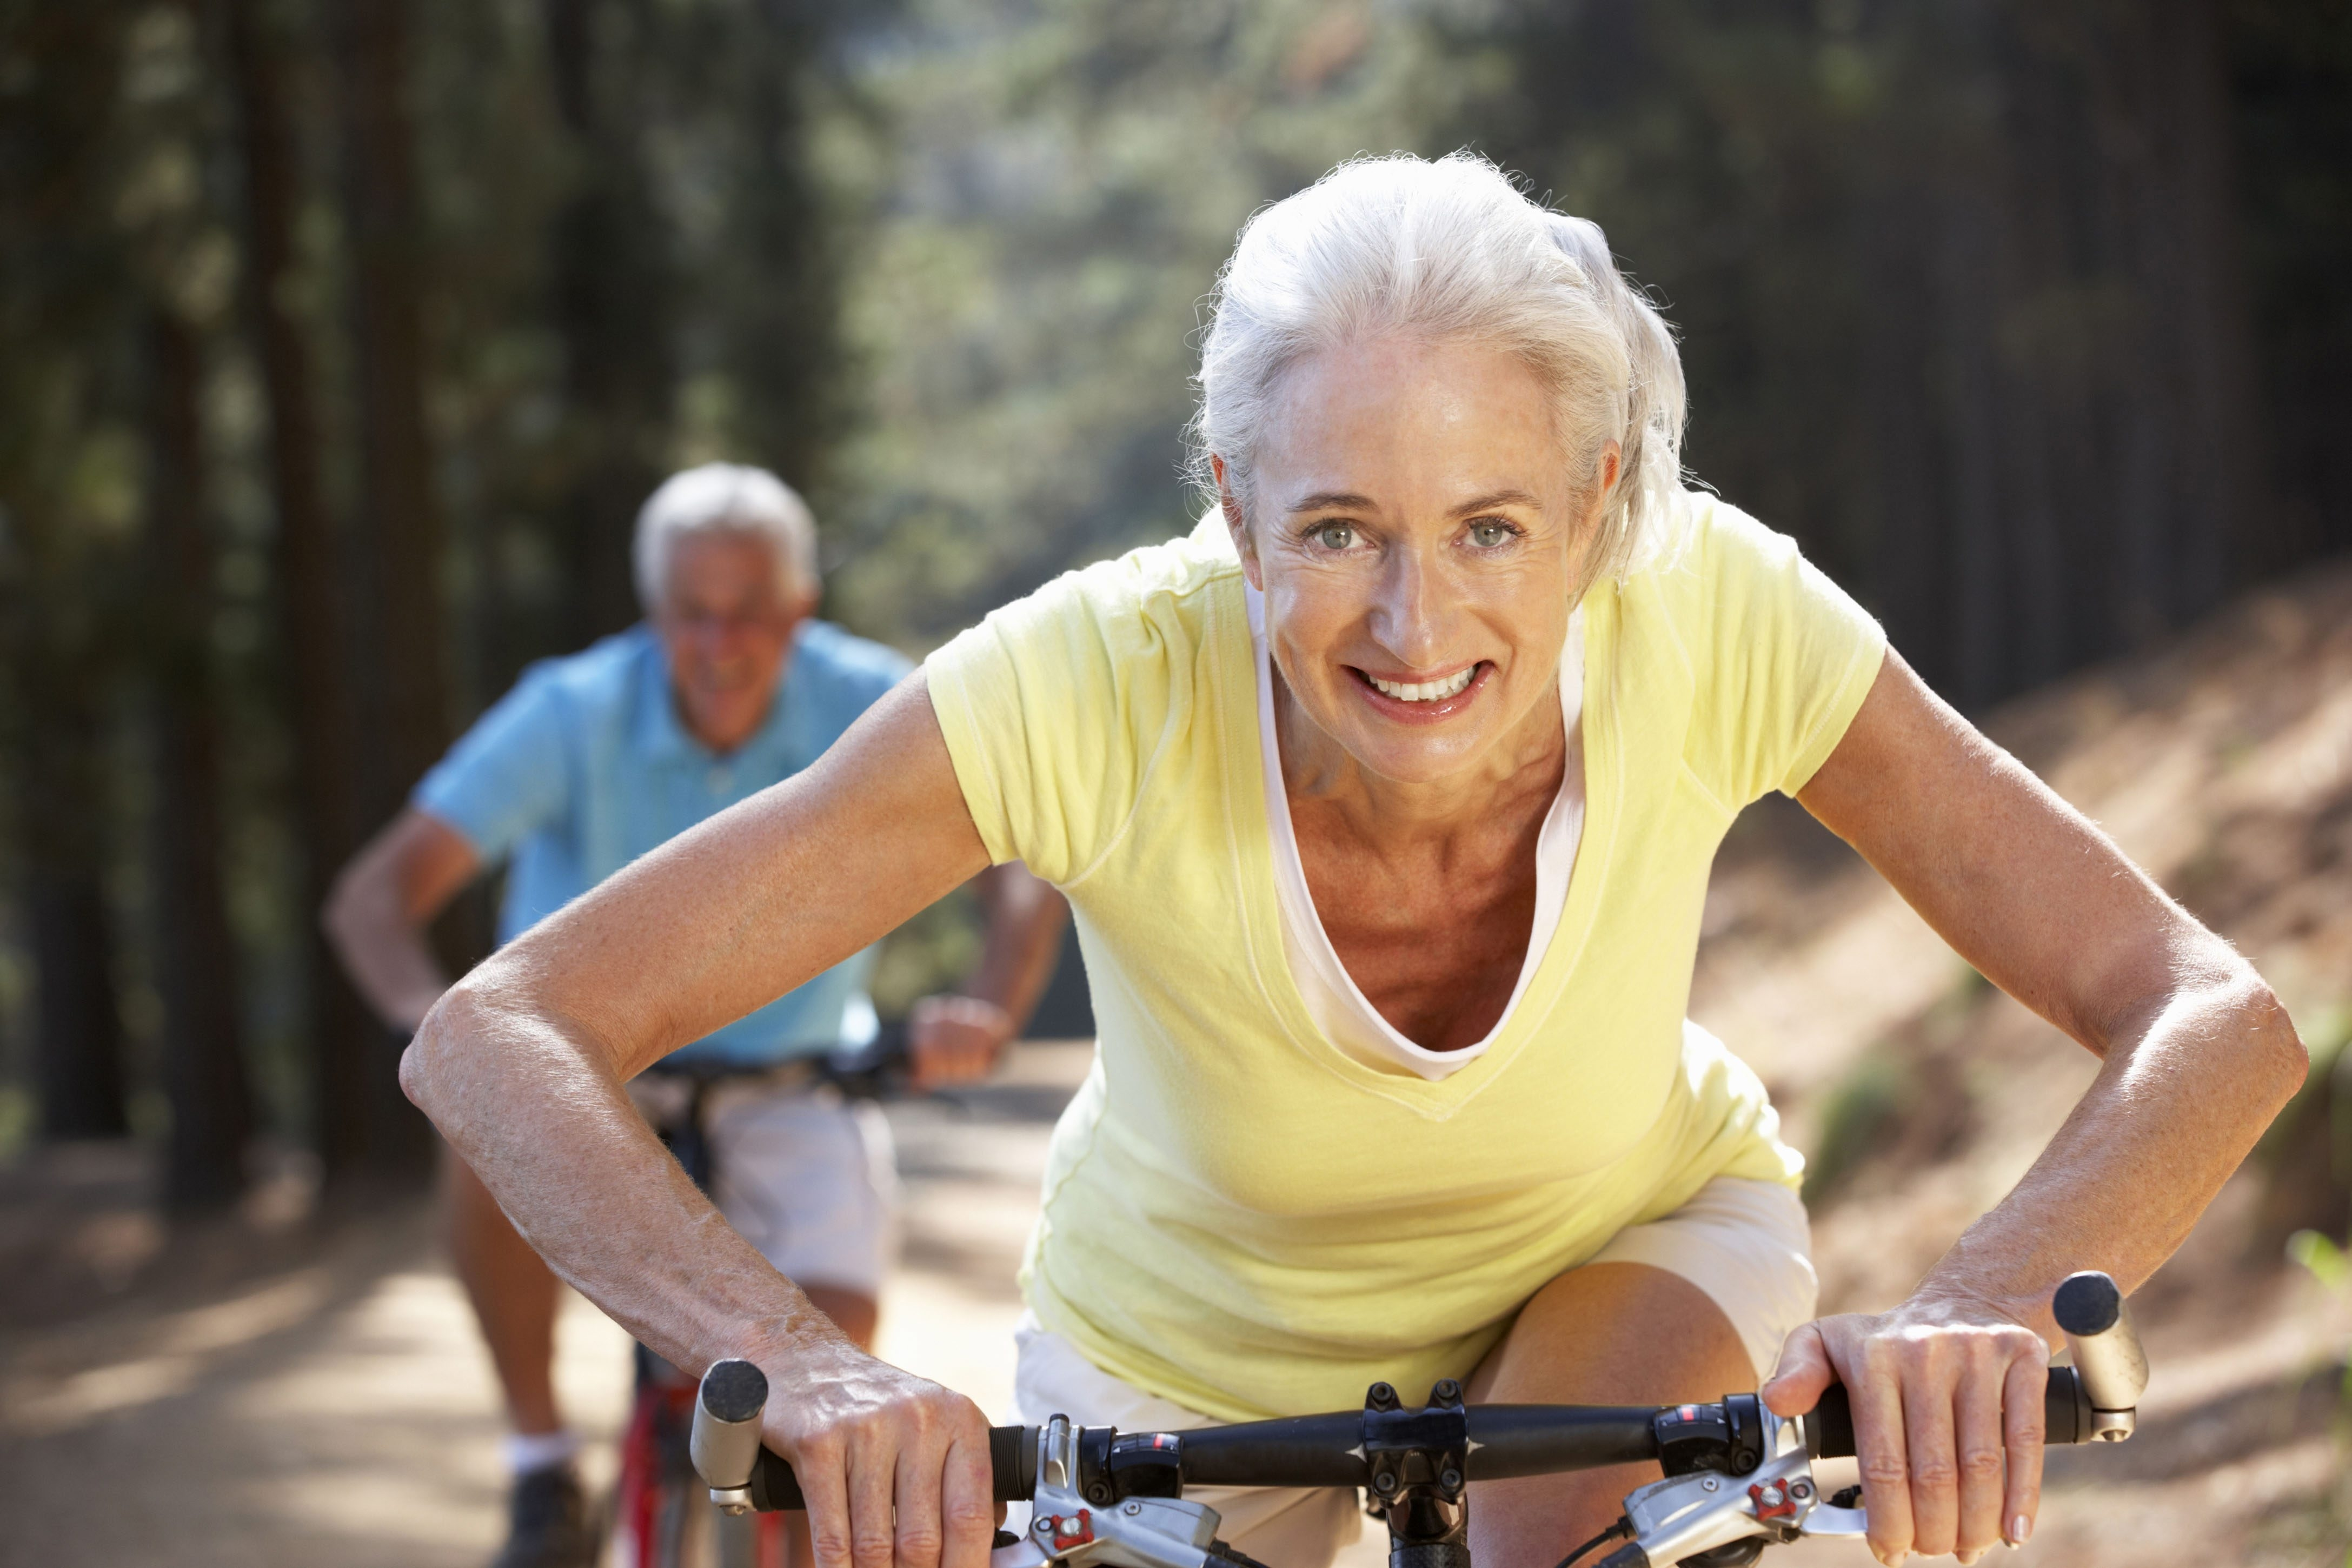 A recent study suggests that cardiorespiratory fitness in midlife protects against dementia two decades later.